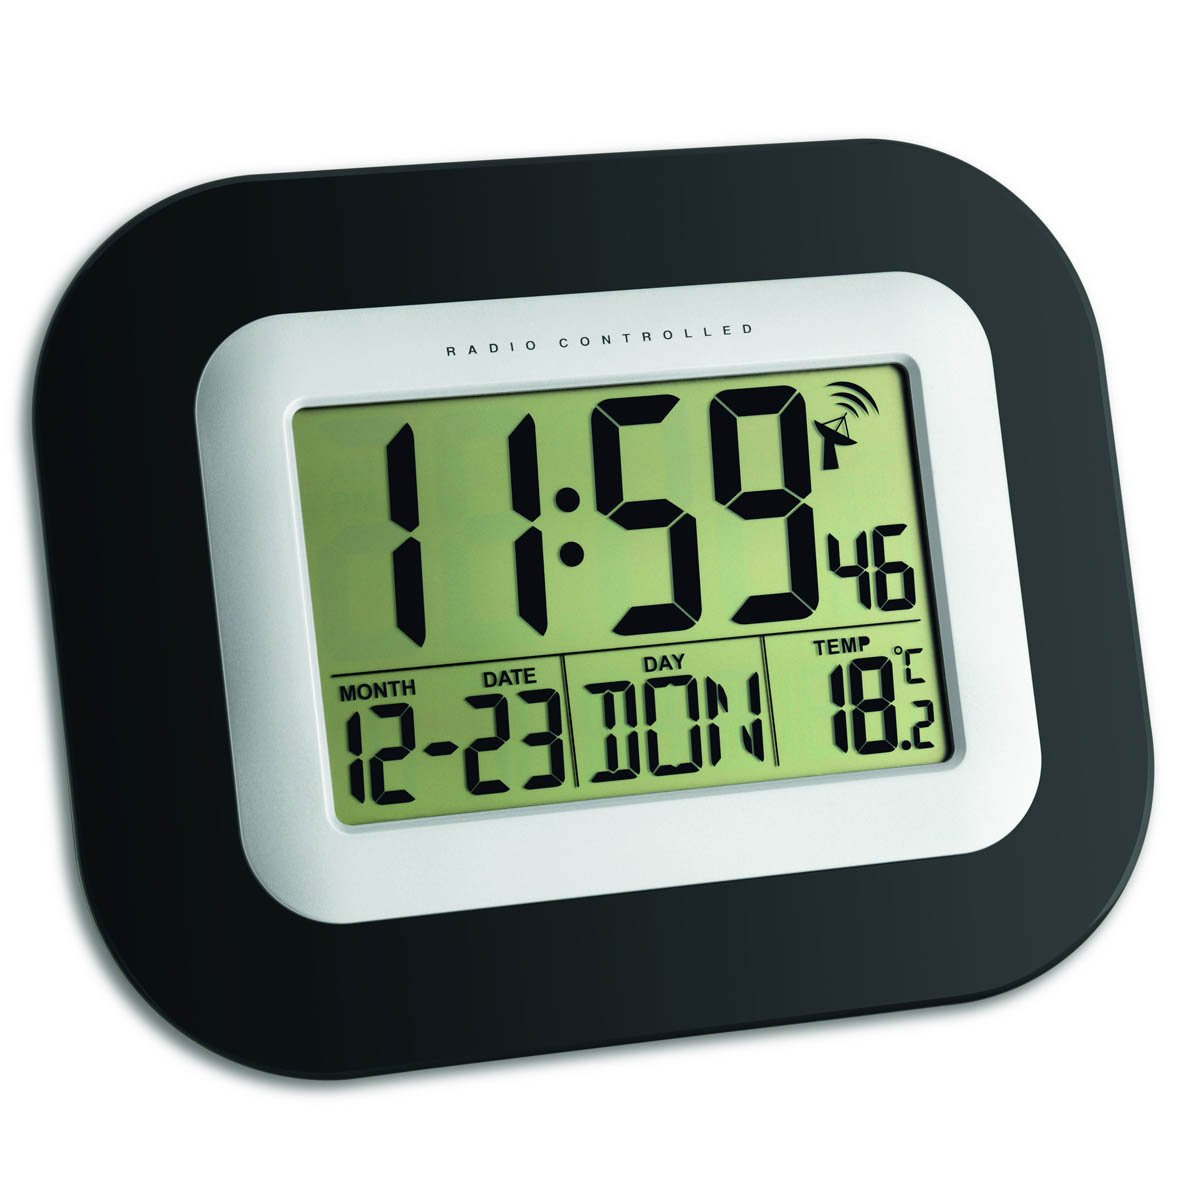 TFA Livingston Date Temp Digital Wall & Alarm Clock, Black, 23cm